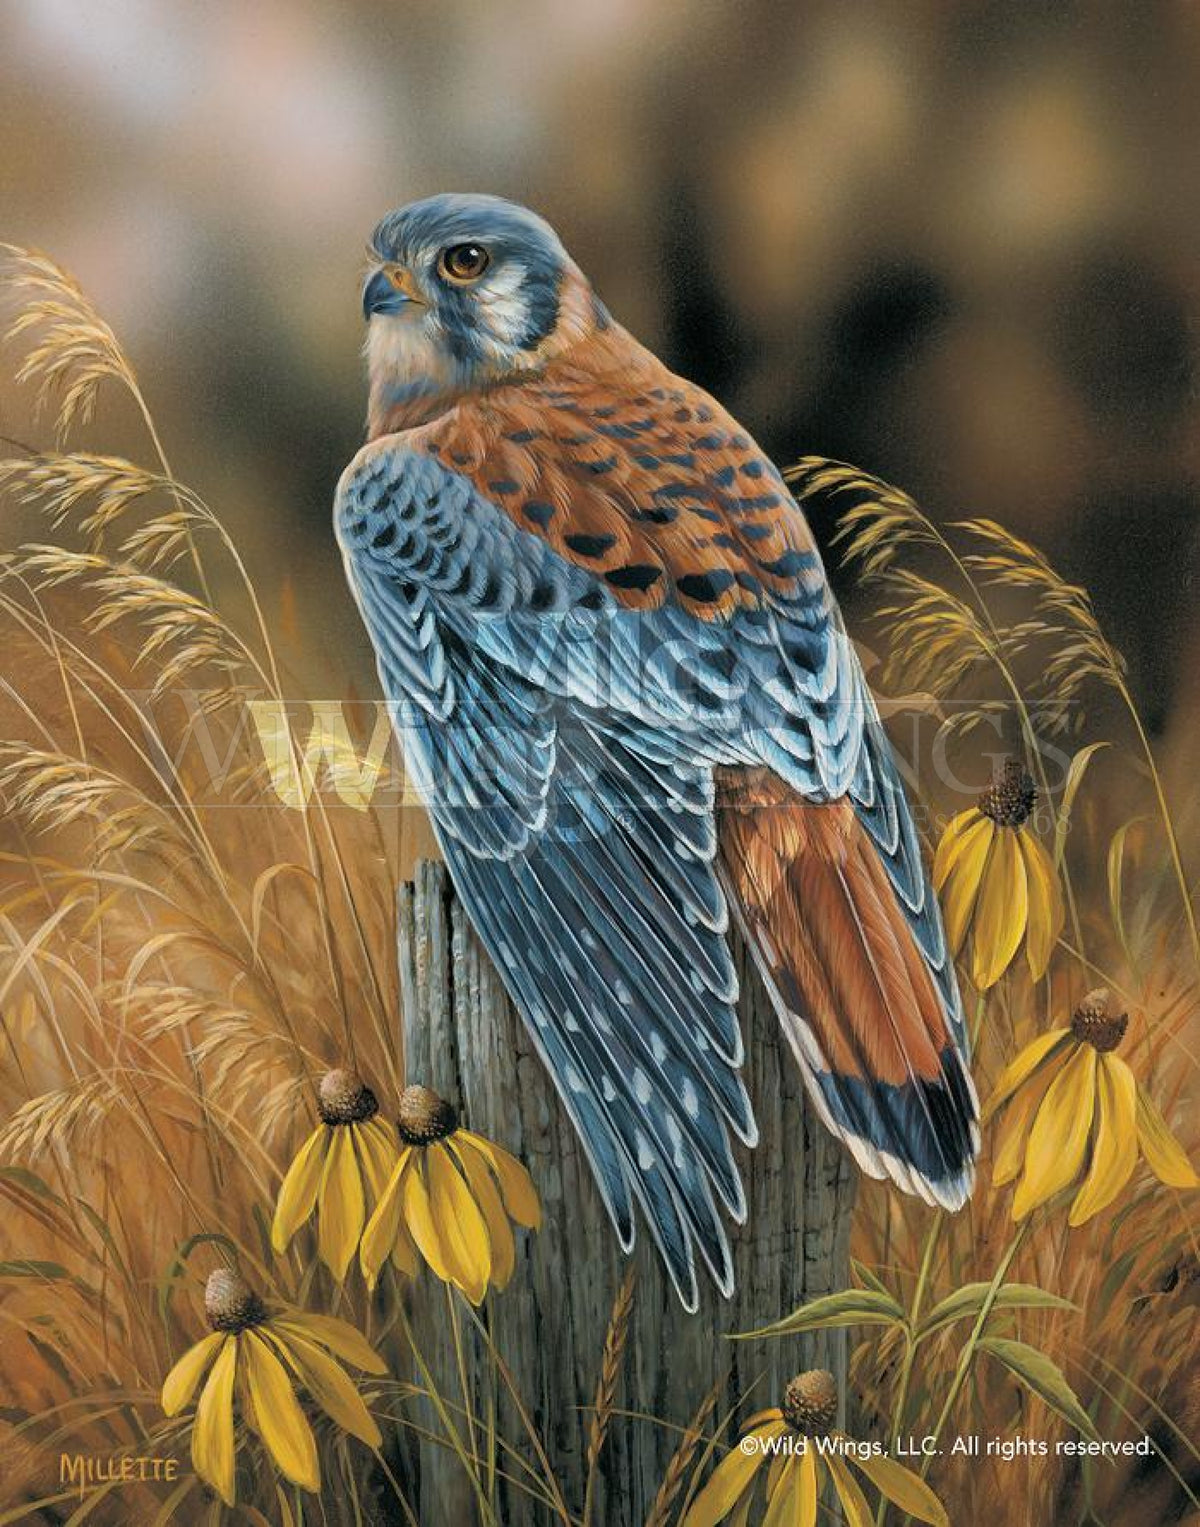 <I>Fencepost Perch&mdash;kestrel</i> Print<Br/>14H X 11W Art Collection